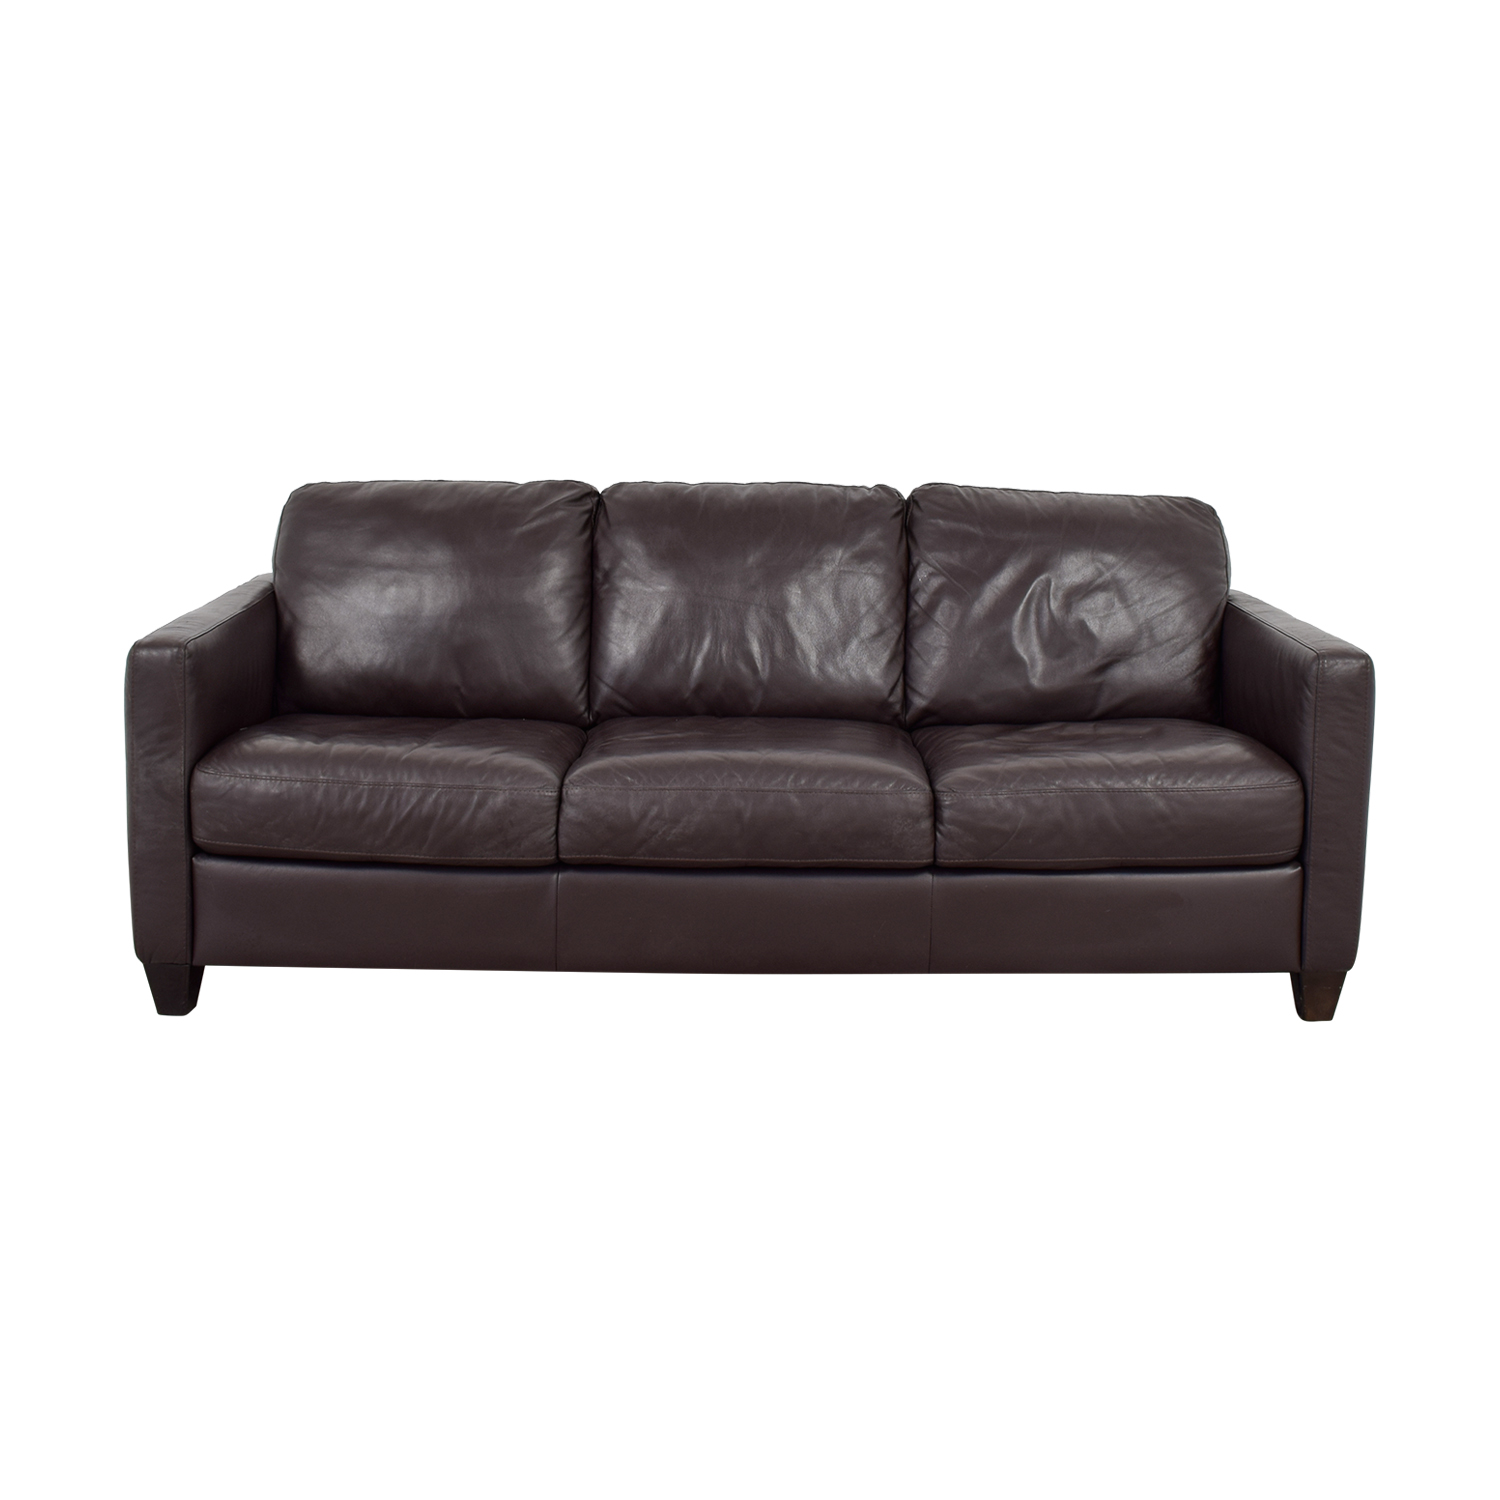 79 off natuzzi natuzzi brown leather three cushion couch sofas - Sofas natuzzi ...